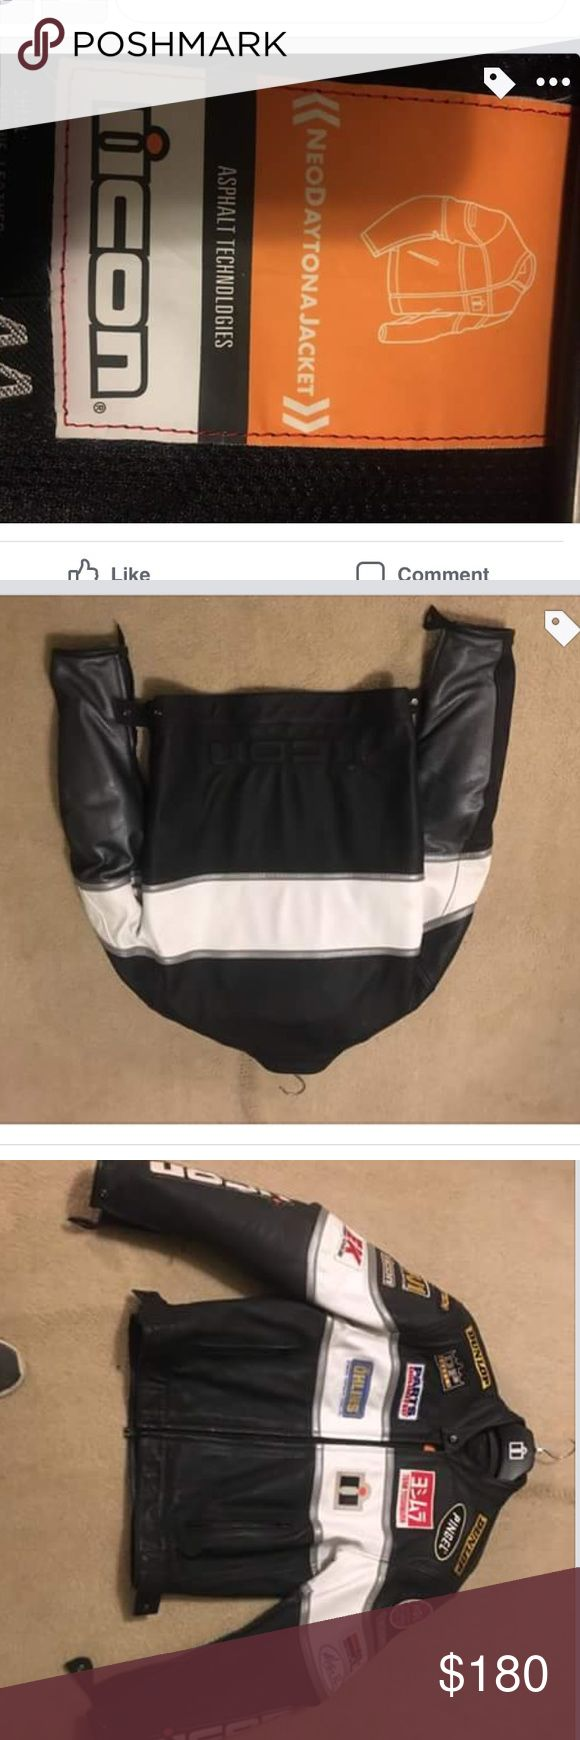 Icon motorcycle jacket Barely worn. Helping my dad sell it. ICON Jackets & Coats Performance Jackets